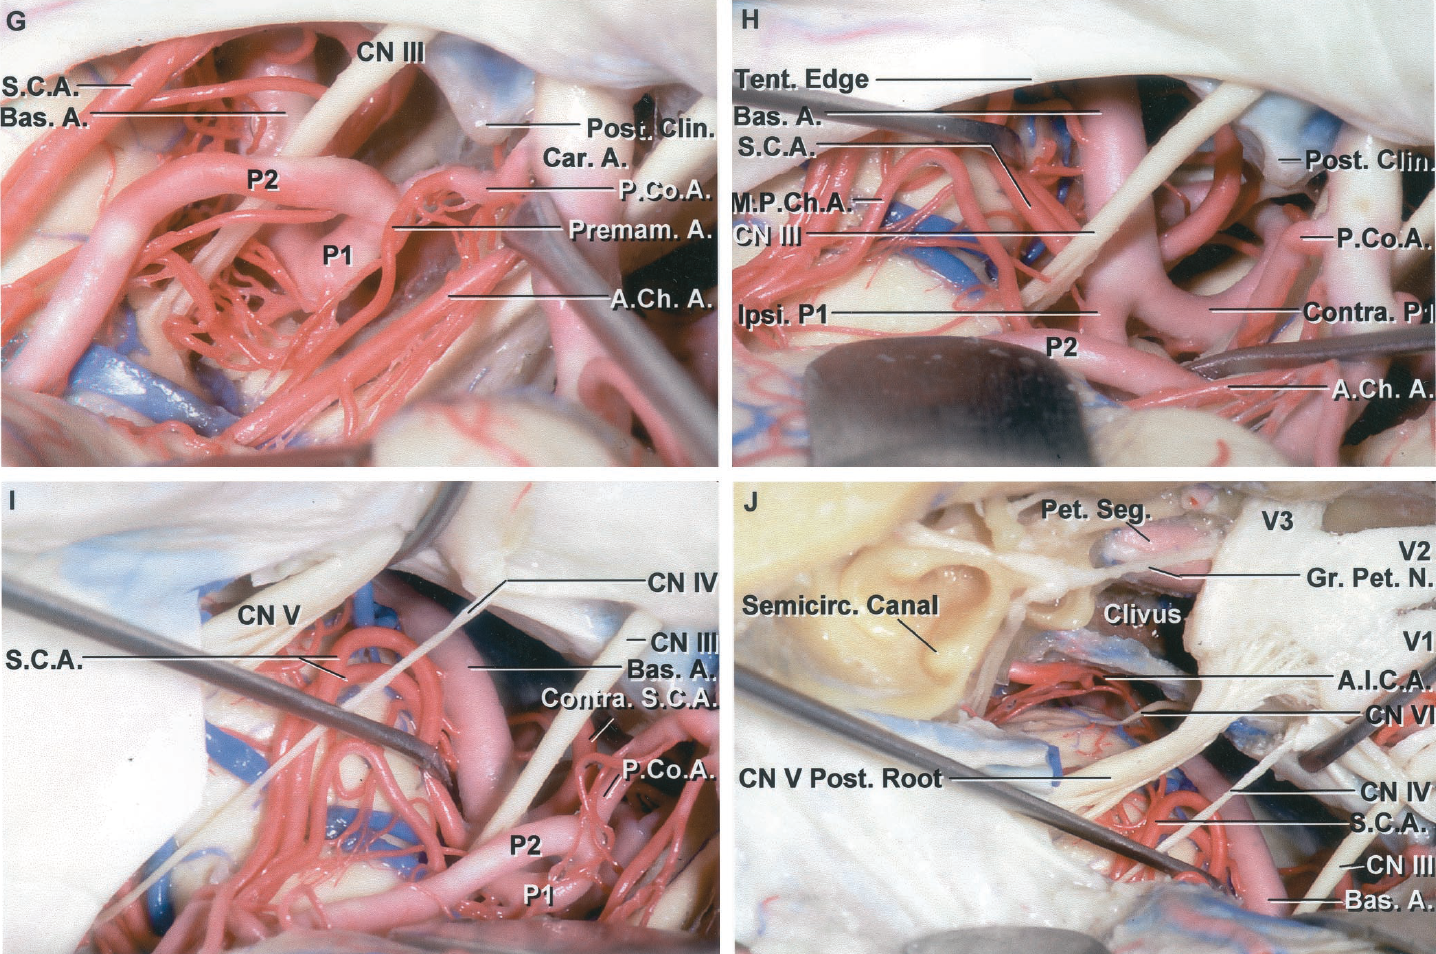 Figure 2.3 G-J. G, the AChA has been elevated to expose a large perforating branch of the PComA called a premamillary artery. H, the PComA has been elevated to provide an excellent exposure of the basilar apex and the P1s. The ipsilateral SCA arises as a duplicate artery. I, the tentorium has been divided behind where the trochlear nerve enters the edge. This increases the length of basilar artery exposed. The trunks of a duplicate superior cerebellar artery loop down toward the trigeminal nerve. J, the petrous apex has been removed to complete an anterior petrosectomy approach, which increases access to the front of the brainstem and the basilar artery. In this case, the labyrinth including the cochlea and semicircular canals, and the nerves in the internal acoustic meatus have been exposed to show the relationship of the drilling for the anterior petrosectomy in relationship to these structures. The drilling for an anterior petrosectomy is directed behind the petrous carotid artery medial to the labyrinth and proceeds medially to the inferior petrosal sinus and side of the clivus. The abducens nerve and the ICA are in the lower margin of the exposure. A., arteries, artery; A.Ch.A., anterior choroidal artery; A.Co.A., anterior communicating artery; A.I.C.A., anteroinferior cerebellar artery; Ant., anterior; Bas., basilar; Br., branch; Car., carotid; Clin., clinoid; CN, cranial nerve; Contra., contralateral; Front., frontal; Gr., greater; Ipsi., ipsilateral; Lent. Str., lenticulostriate; M.C.A., middle cerebral artery; M.P.Ch.A., medial posterior choroidal artery; N., nerve; Olf., olfactory; P.Co.A., posterior communicating artery; Pet., petrosal; Post., posterior; Premam., premamillary; Rec., recurrent; S.C.A., superior cerebellar artery; Seg., segment; Semicirc., semicircular; Temp., temporal; Tent., tentorial; Thal. Perf., thalamoperforating; Tr., tract; Trifurc., trifurcation.